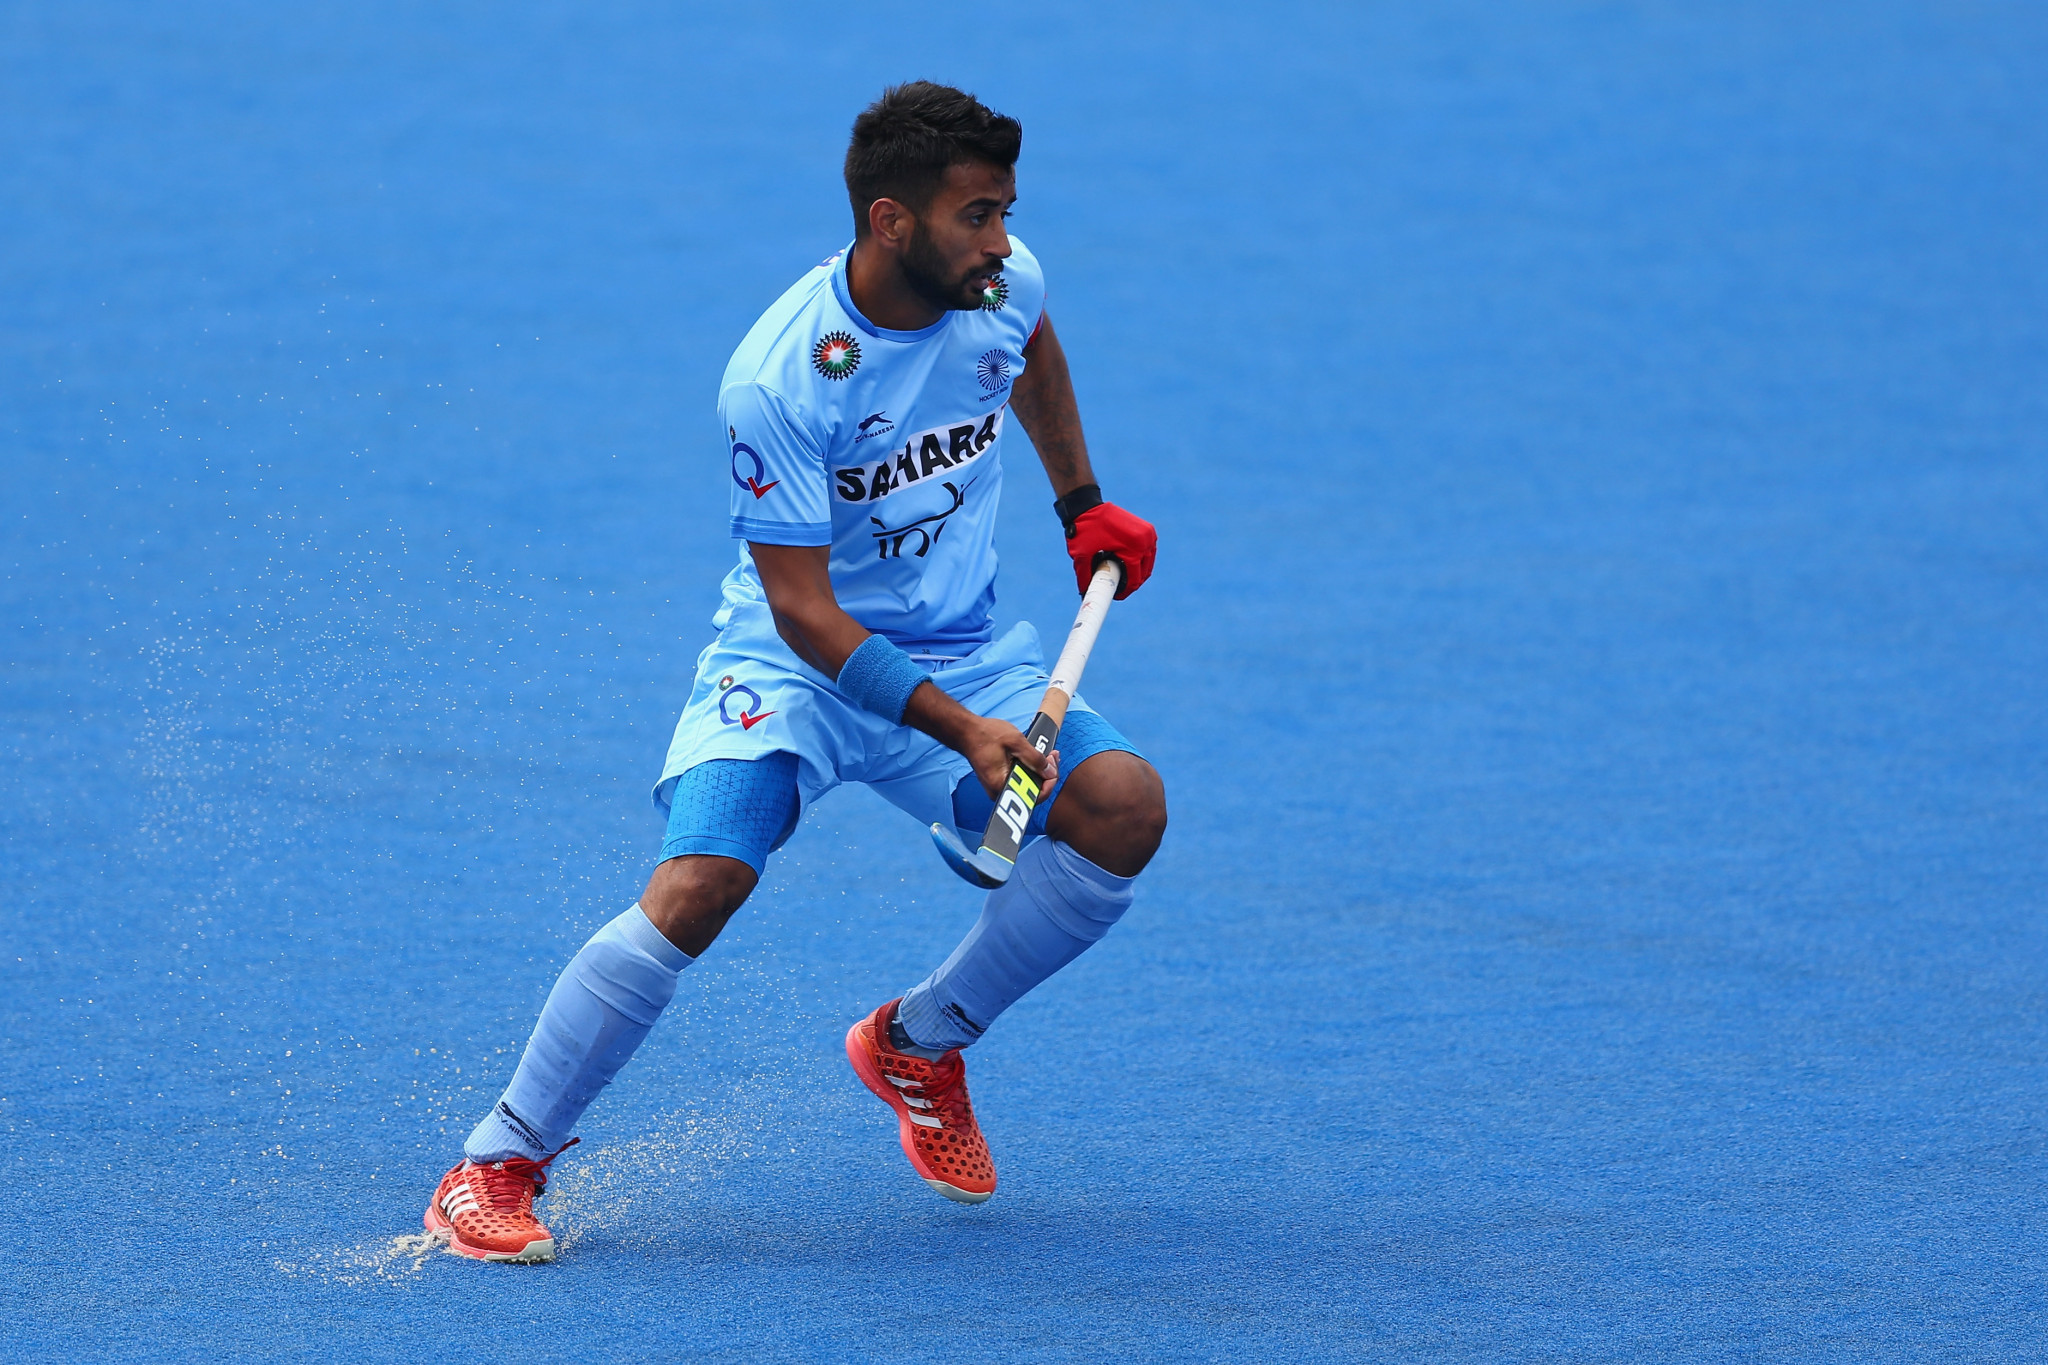 India hockey captain warns country must improve to earn Gold Coast 2018 glory